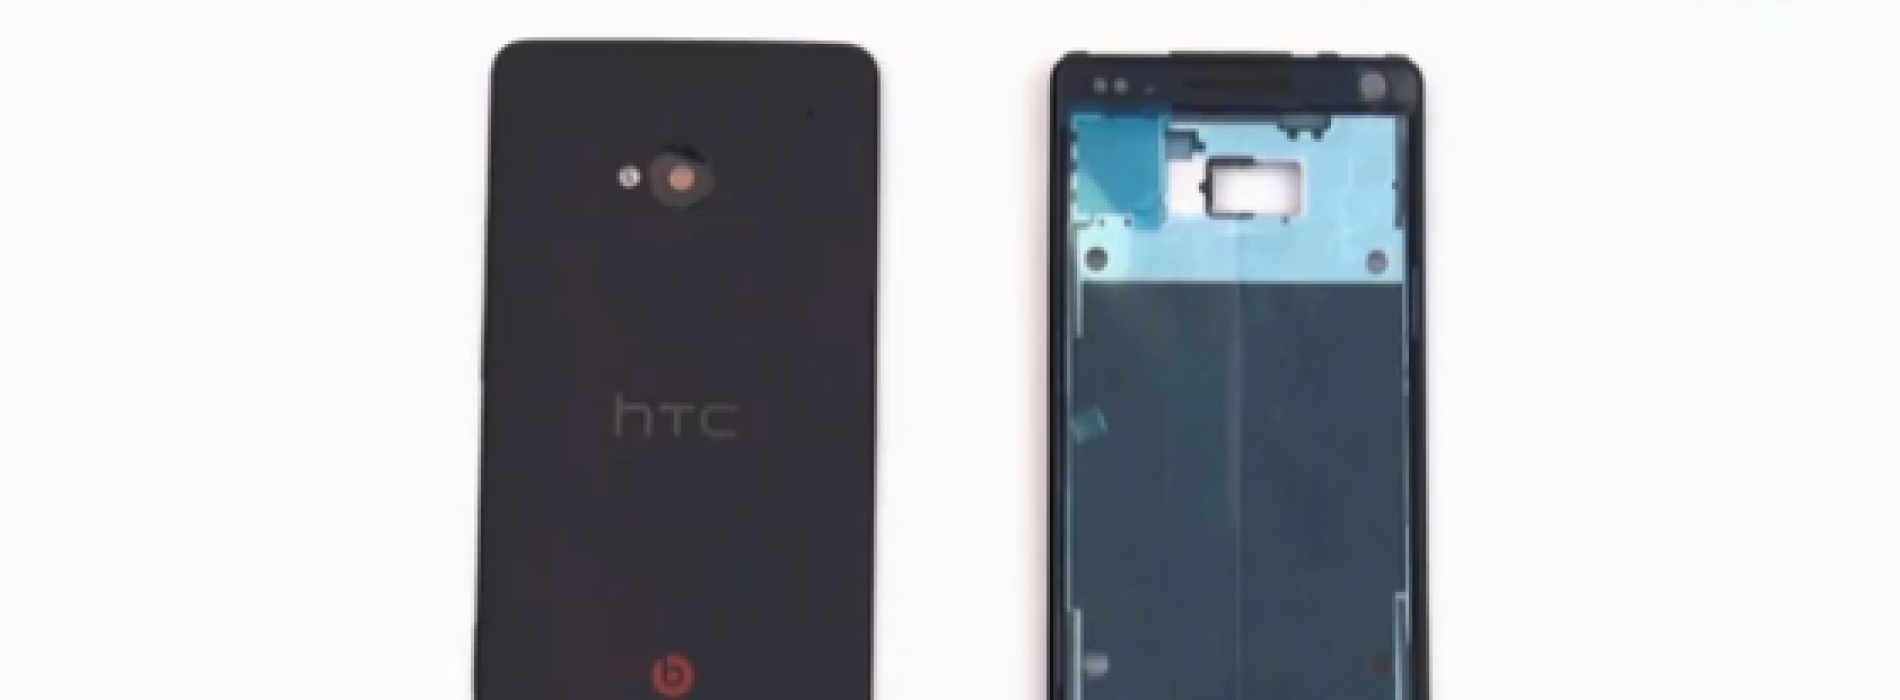 HTC M7 parts shown off in video